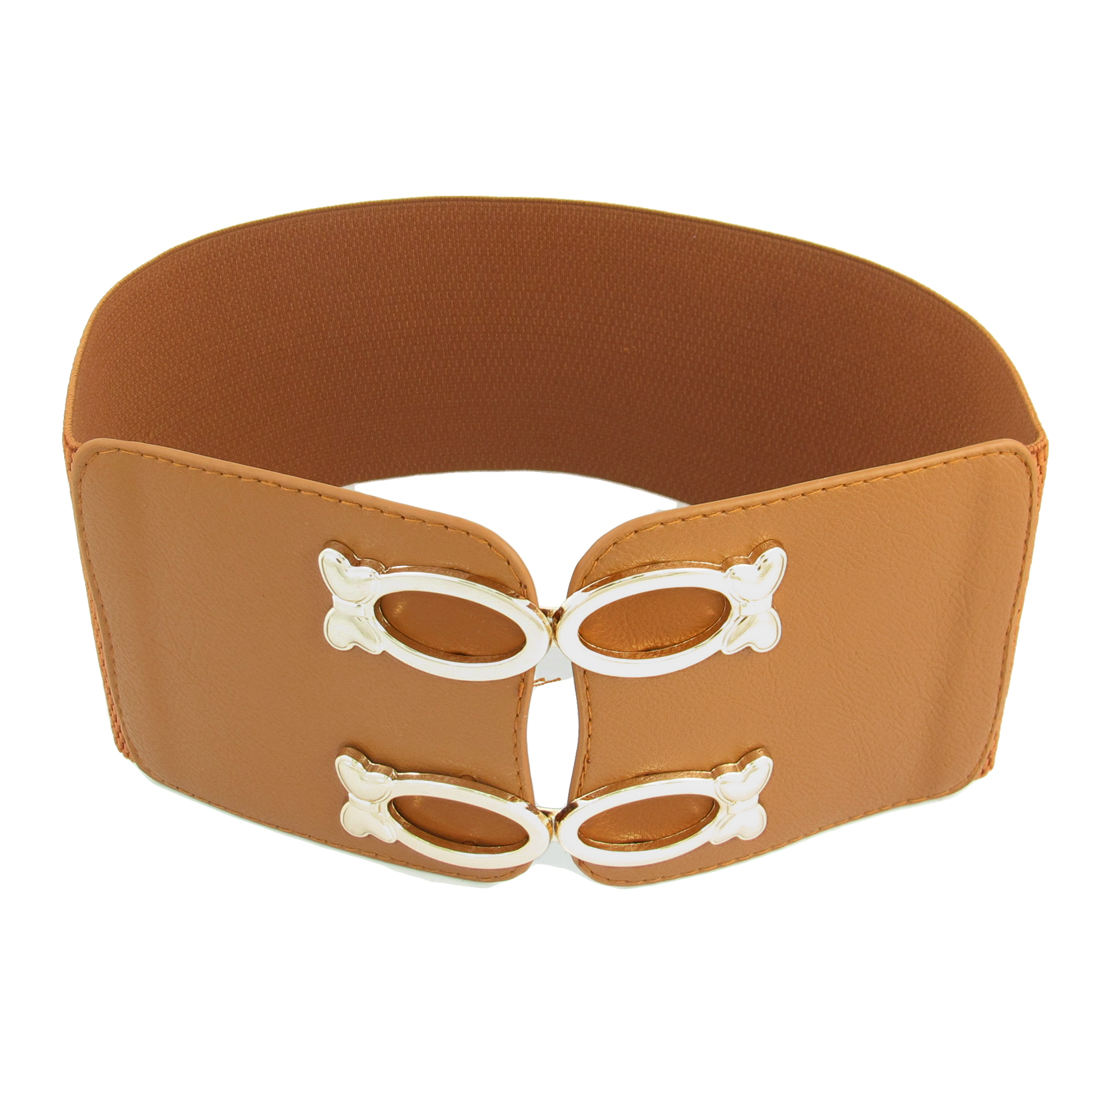 Metal Double Interlocking Buckle Adornment Elastic Waist Belt Brown for Women